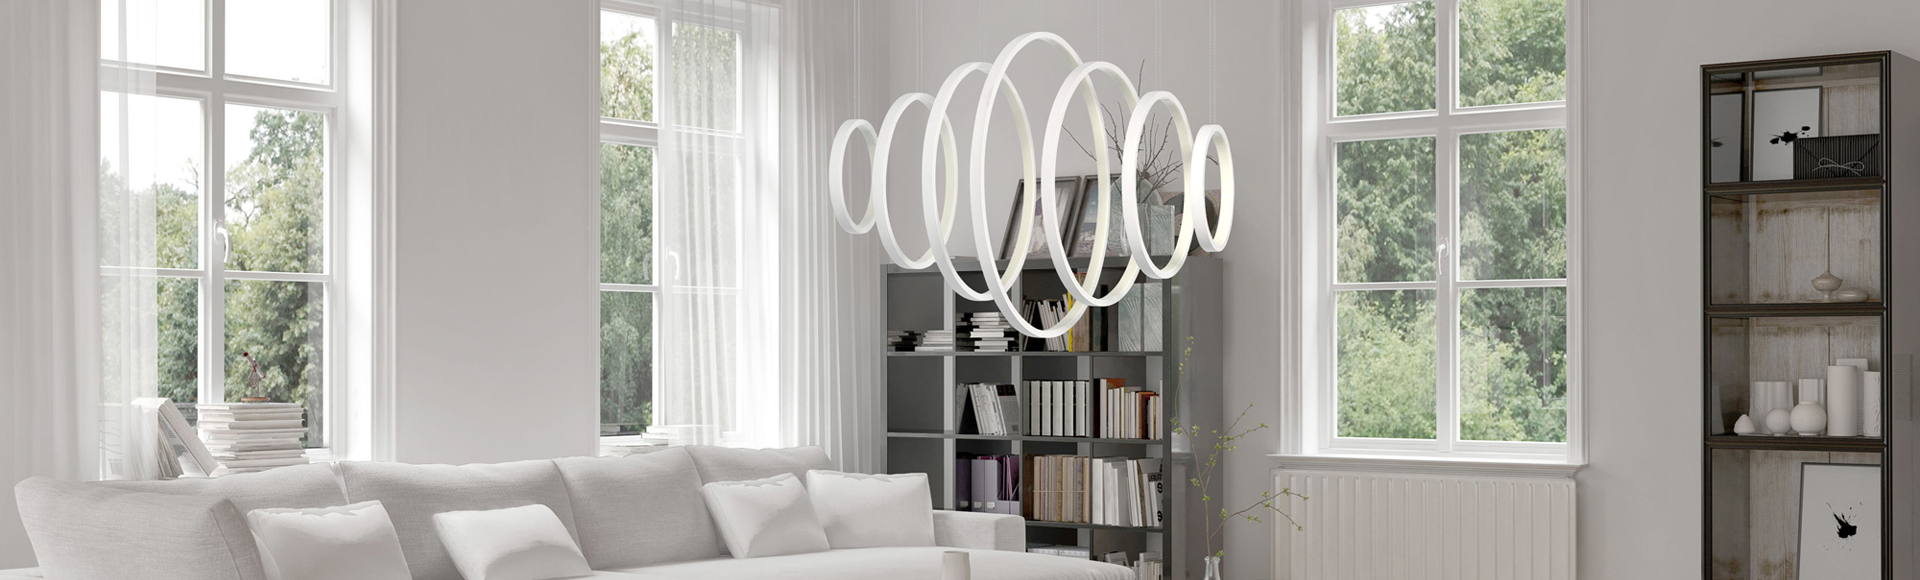 Modern lighting in a living room